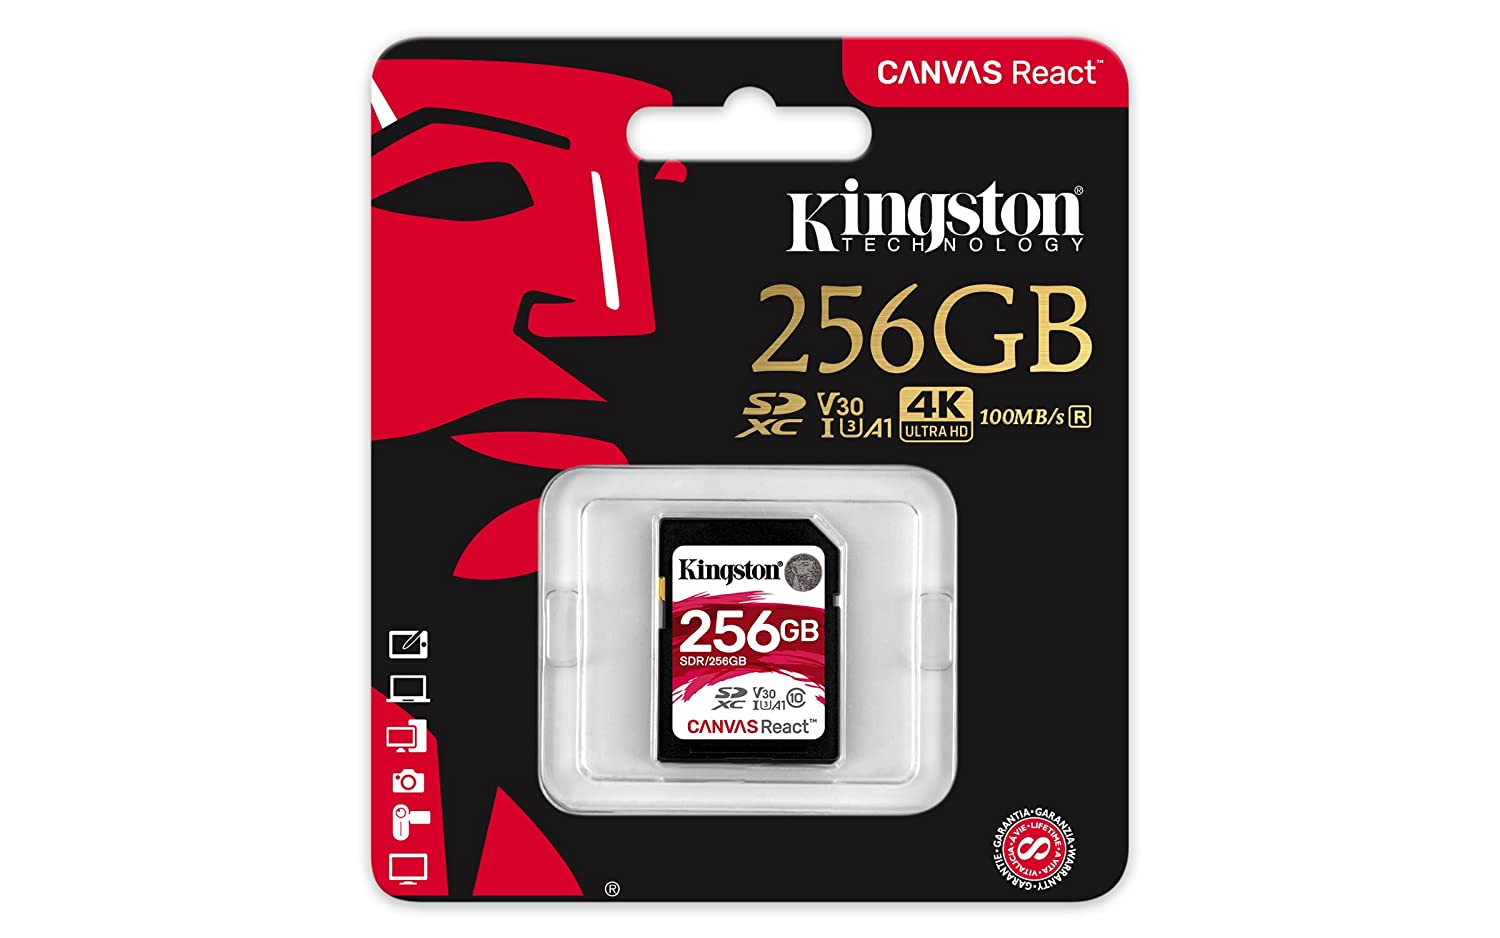 Kingston SDR/256GB Tarjeta Sd Canvas React de 256 Gb, 256 gb, Negro